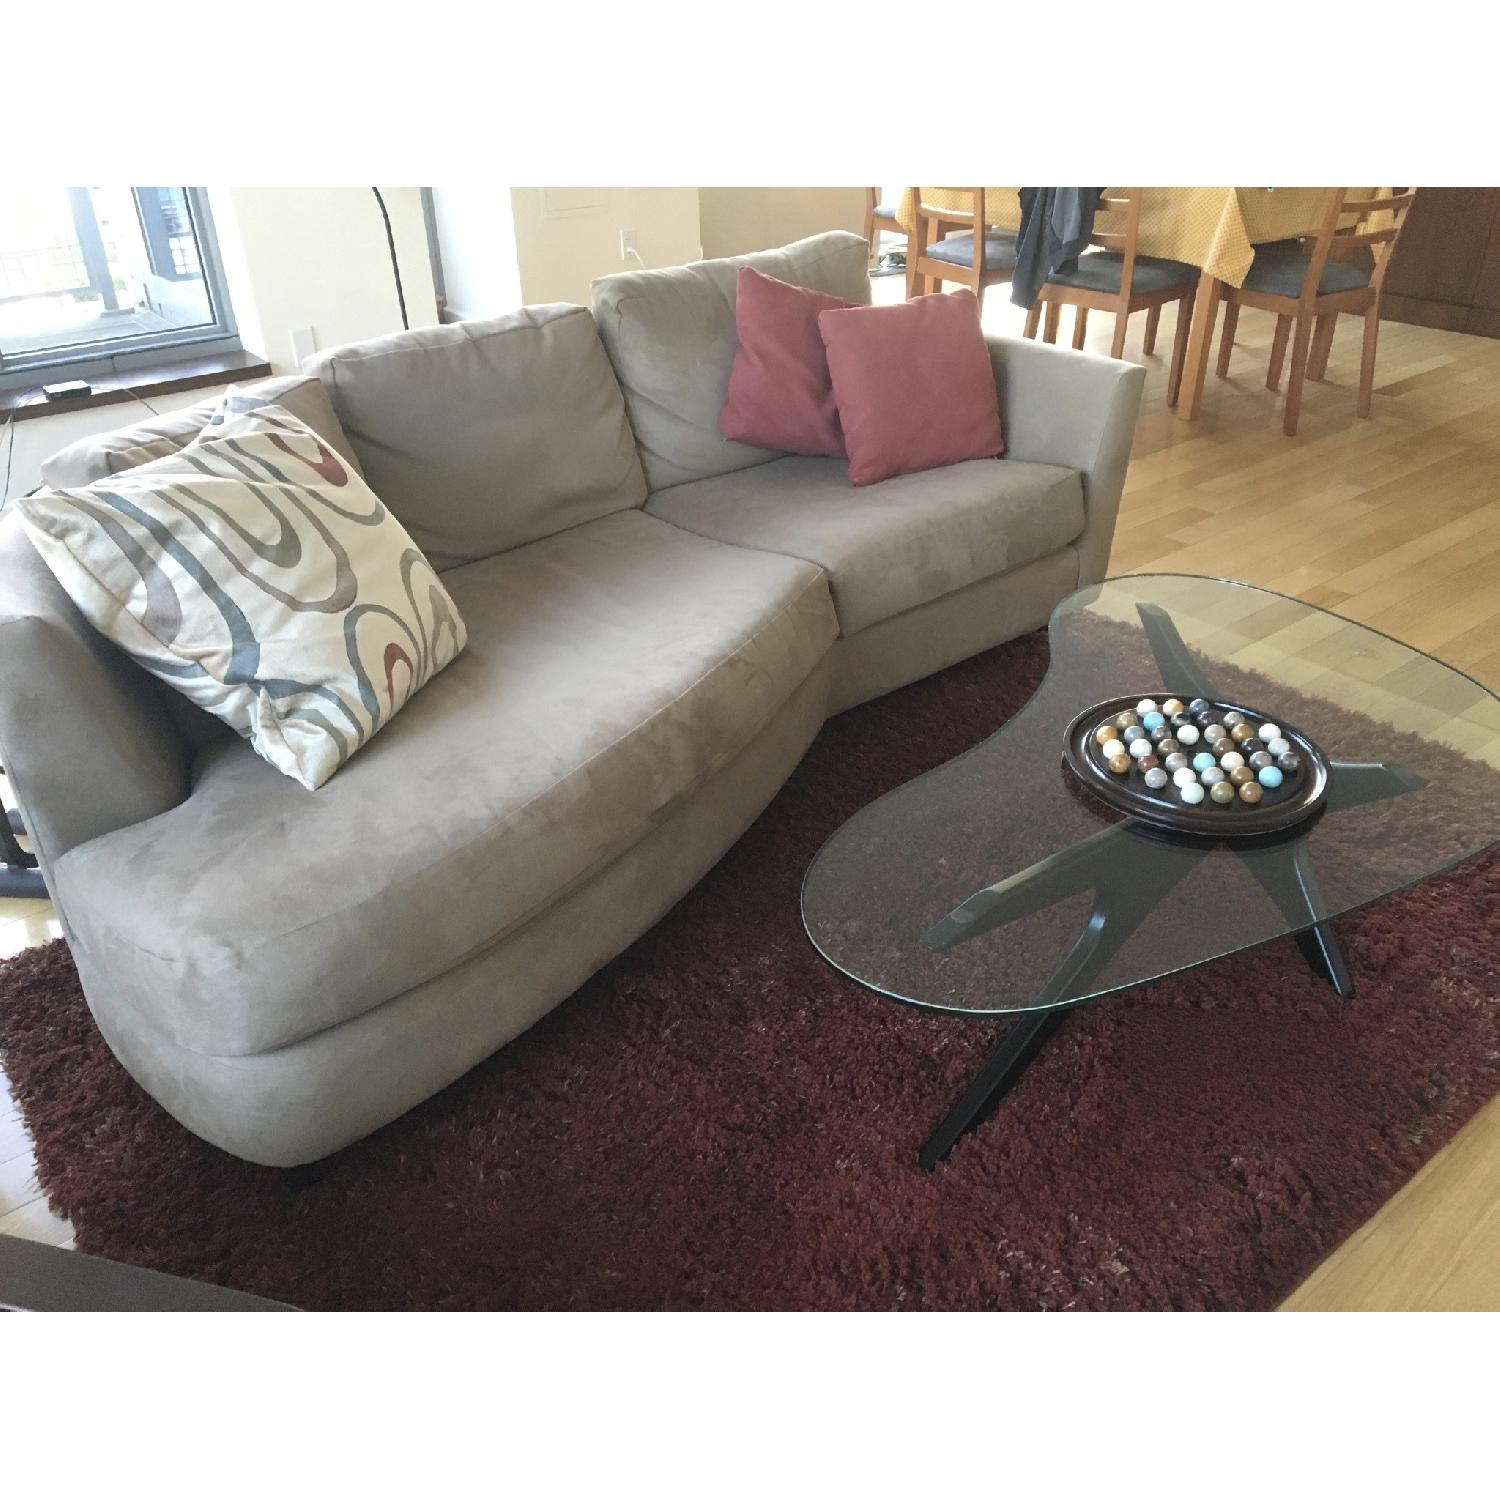 Grey Suede Couch - image-1